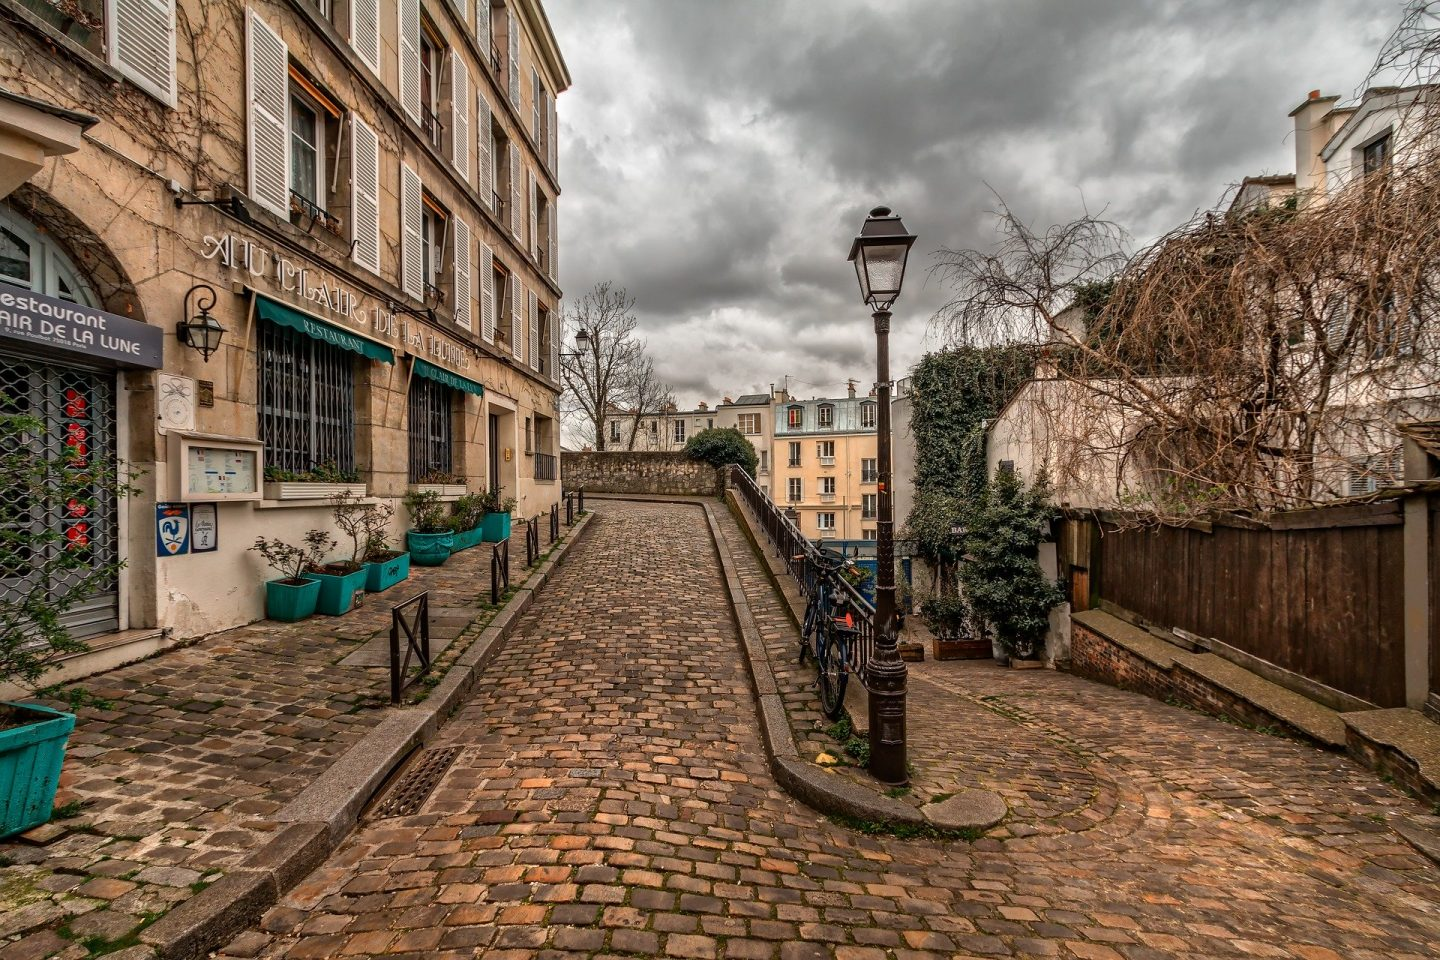 WHAT YOU NEED TO KNOW FOR A FAMILY HOLIDAY IN PARIS